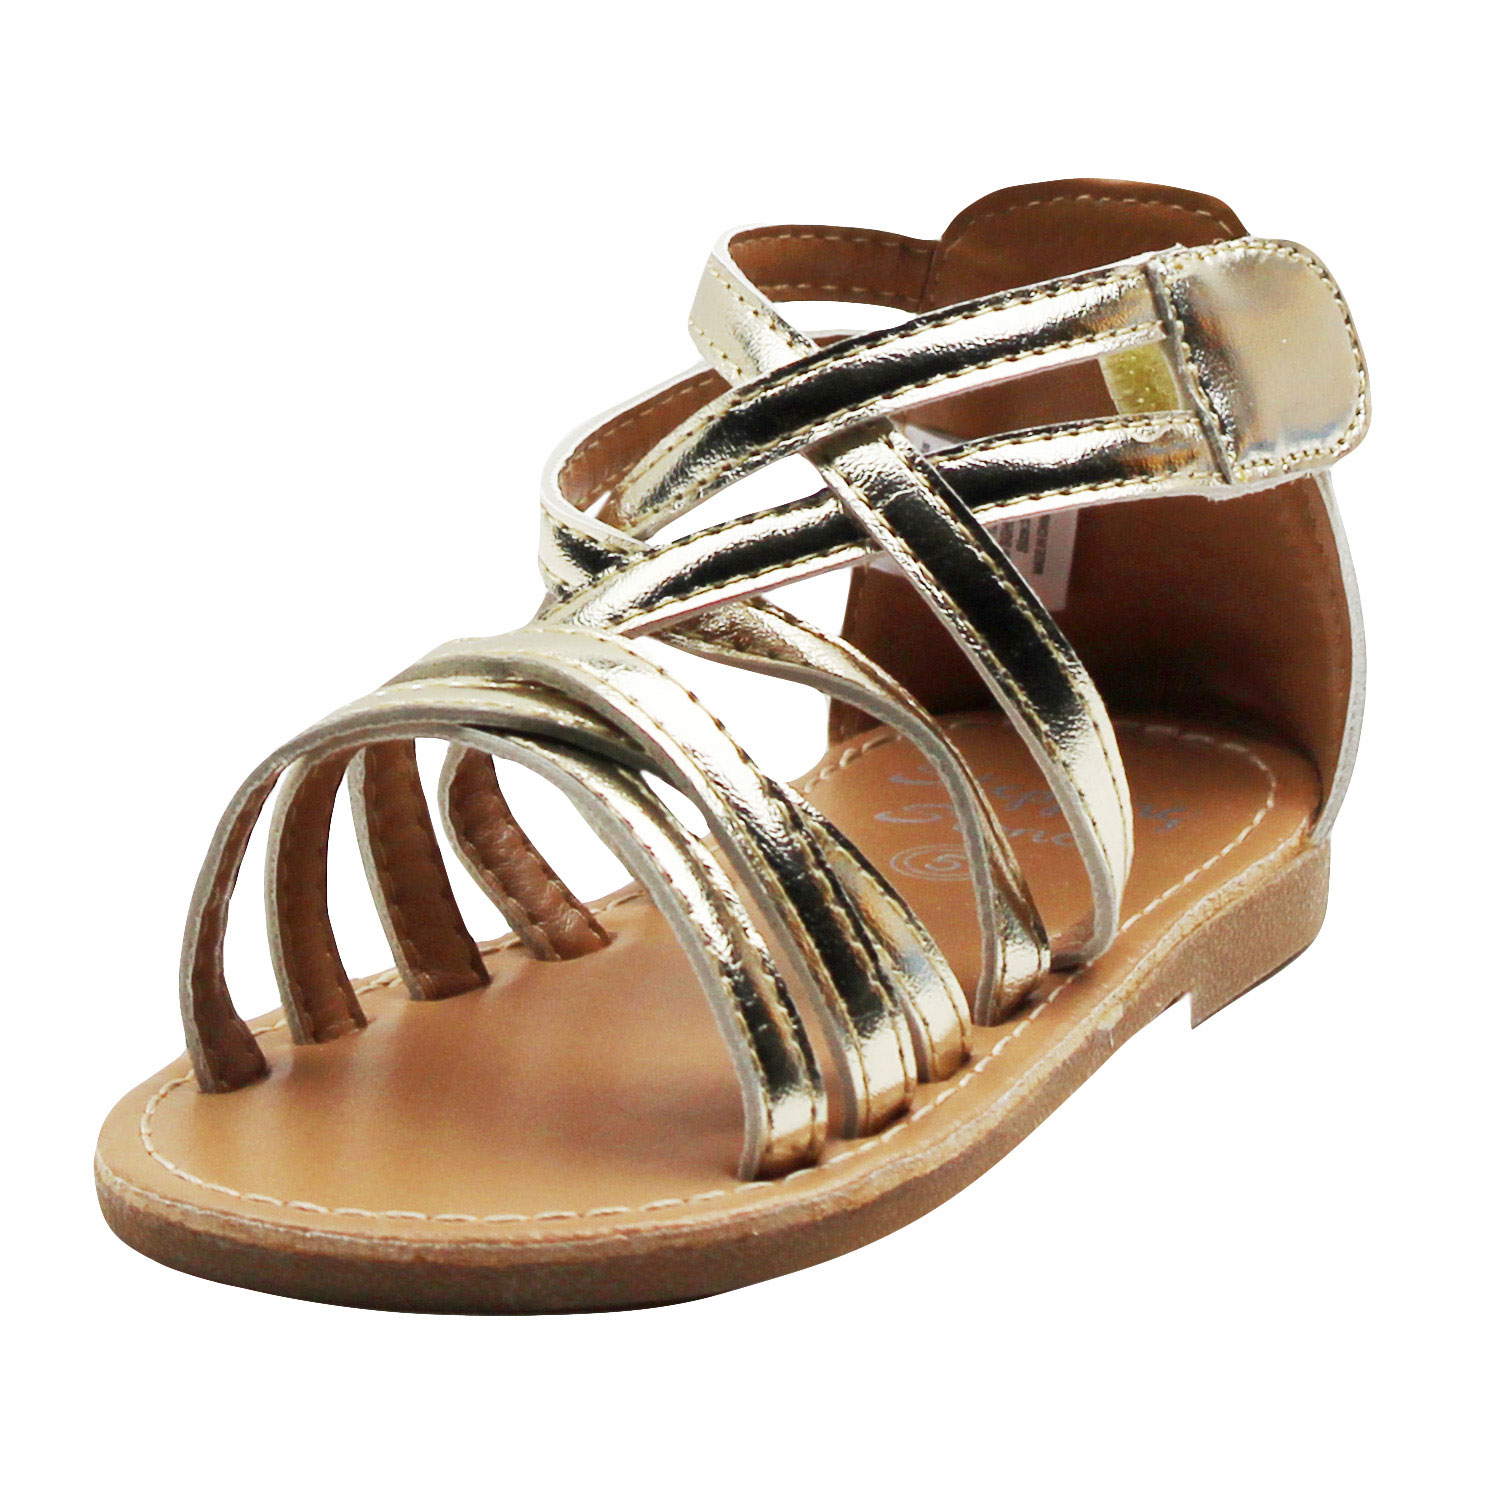 701387f7fc8ae ... Stones Little Girls Gladiator Gold Sandals Girls Strappy Sandals For  Casual or Dress Size 6 Metallic Open Toe Summer Sandals Shiny Infant Toddler  Kids ...